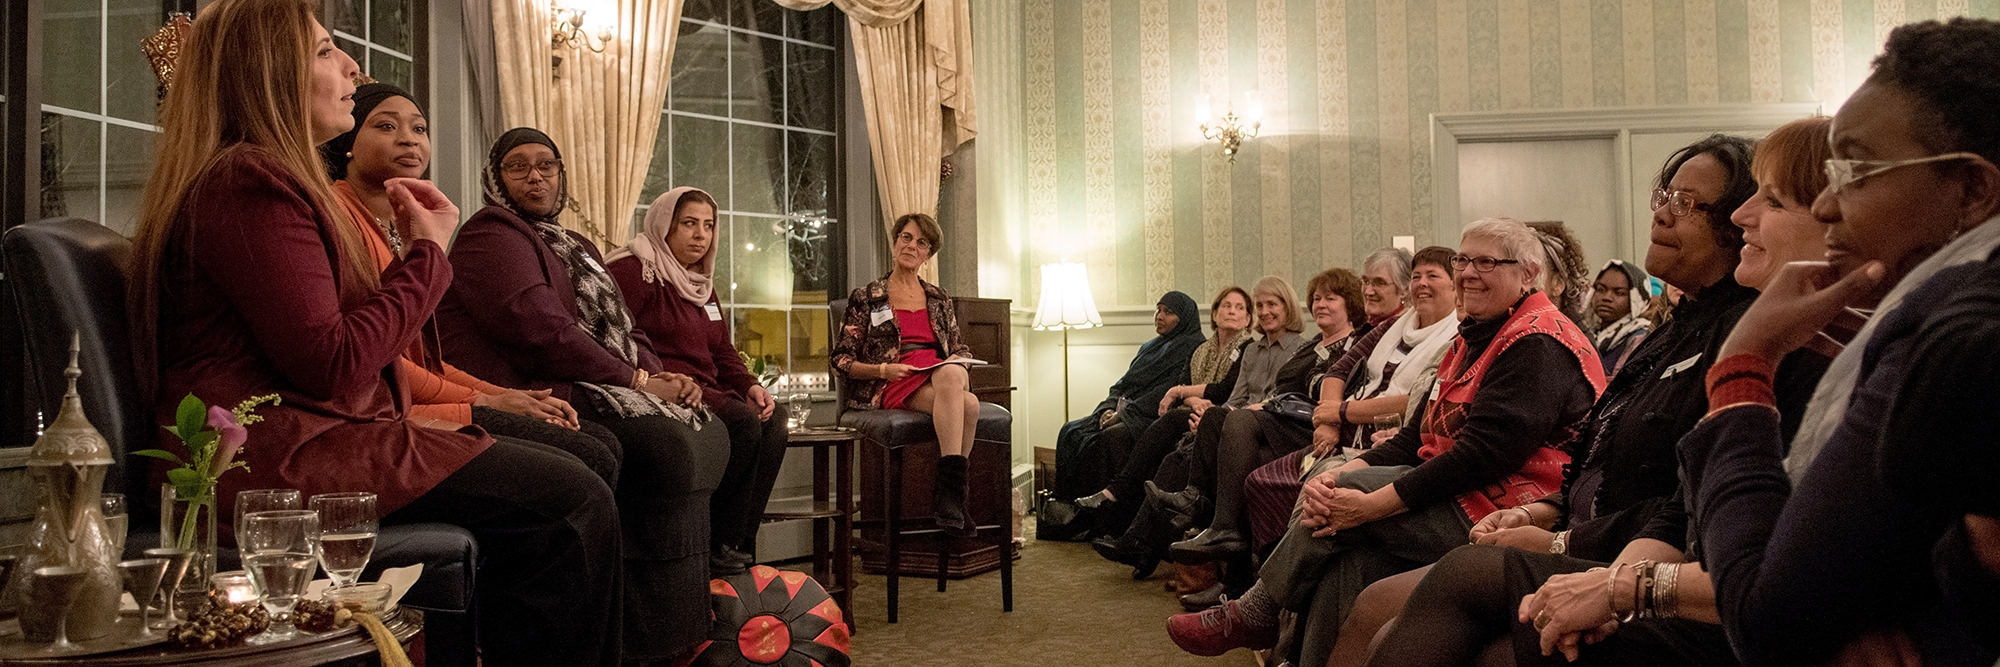 Catherine facilitates a panel of four women who discuss what it's like navigating life as a Muslim in Maine during the 2017 Justice For Women Kick-Off event.